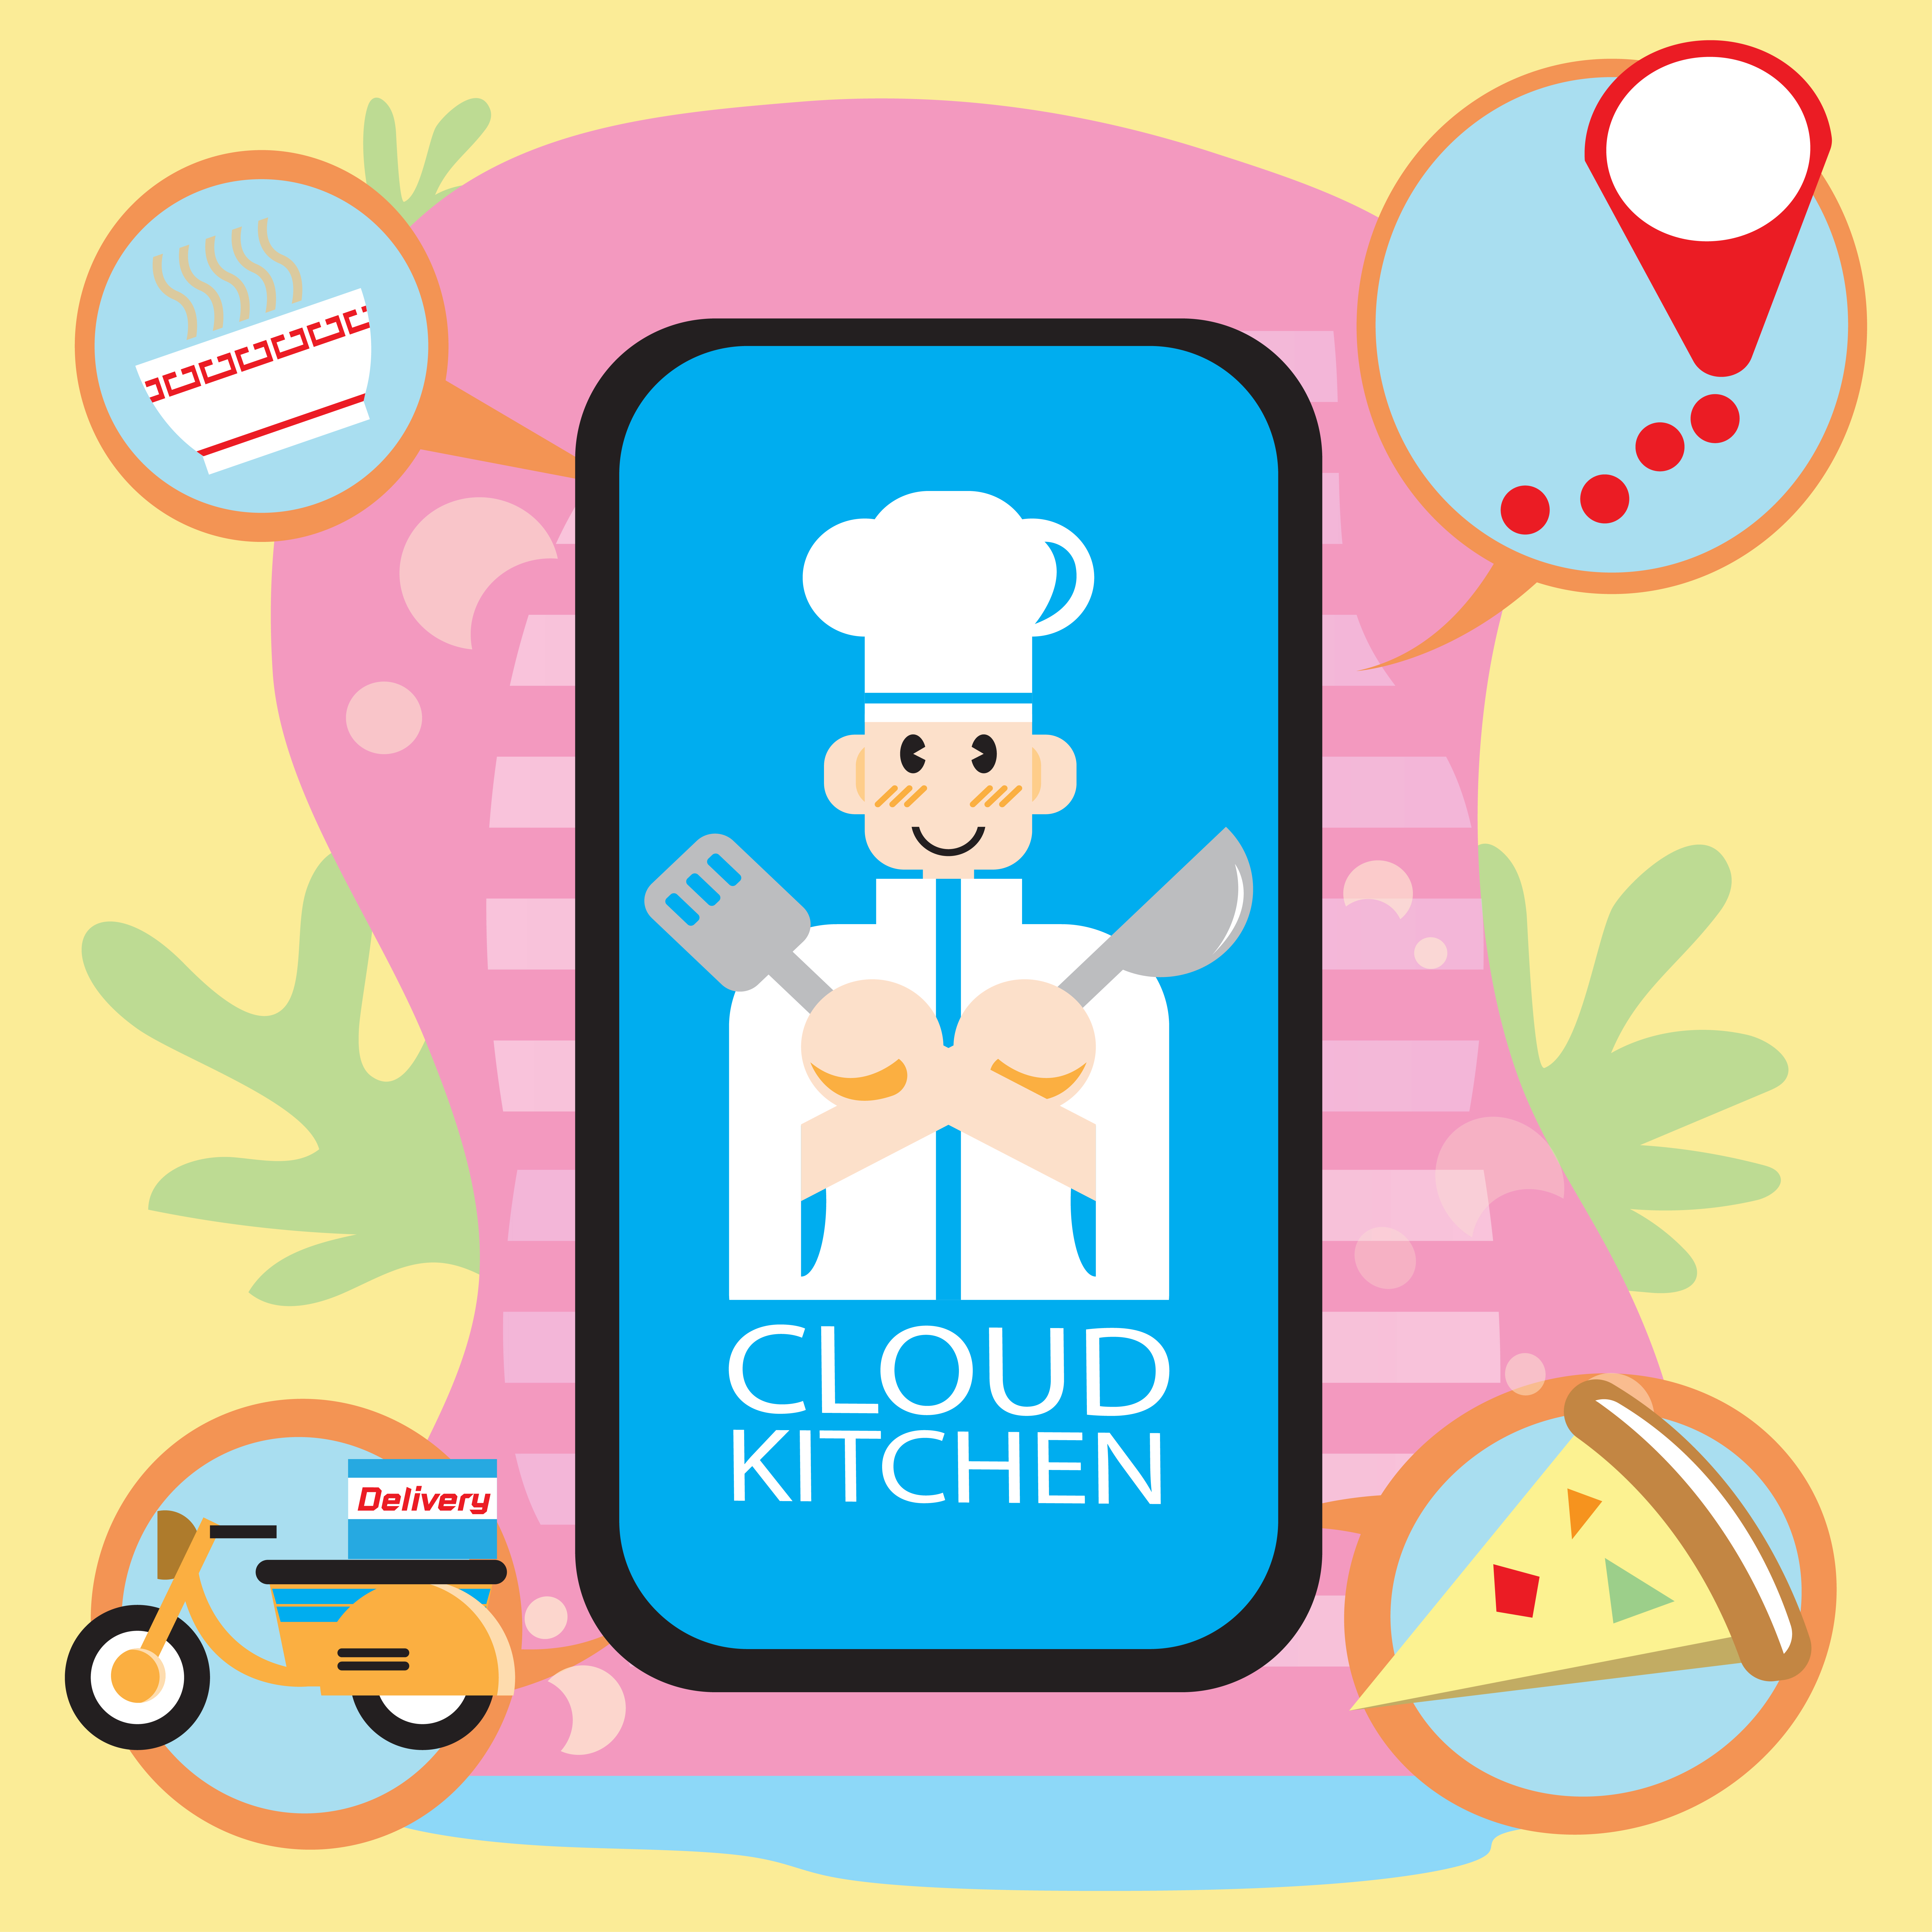 Cloud Kitchen App For Food Delivery Concept 1212783 Vector Art At Vecteezy